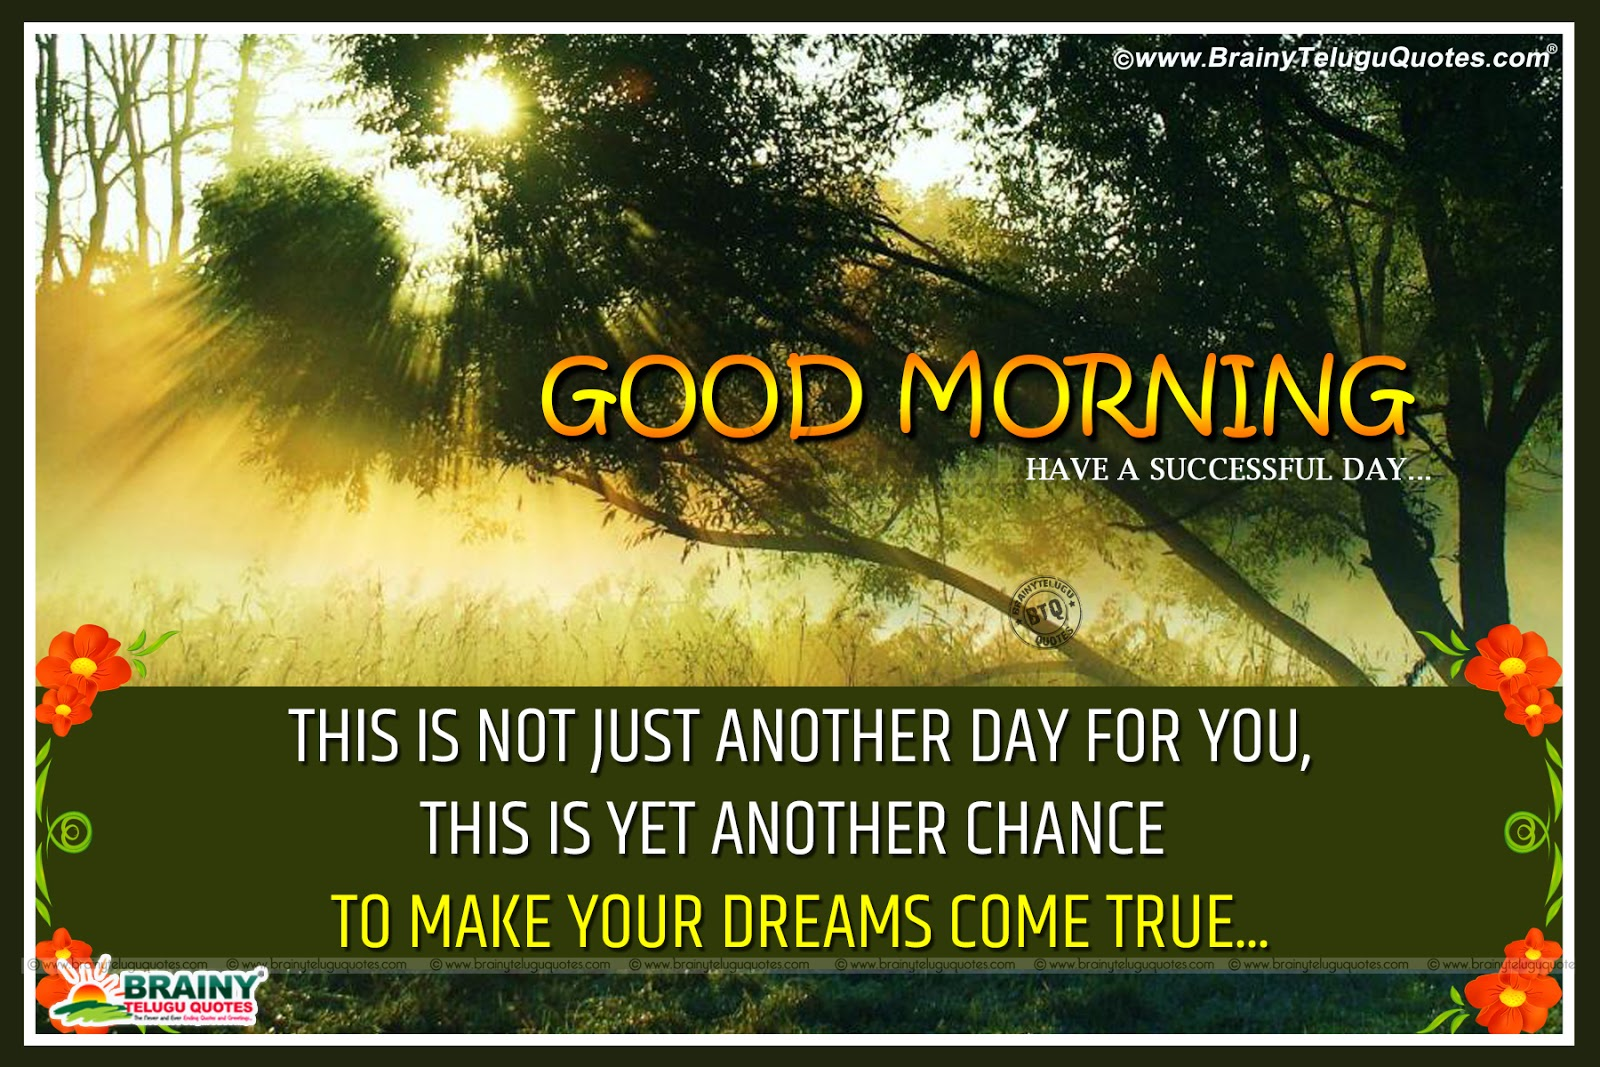 Good Morning Quotes Motivational In English : English inspirational good morning sayings with beautiful